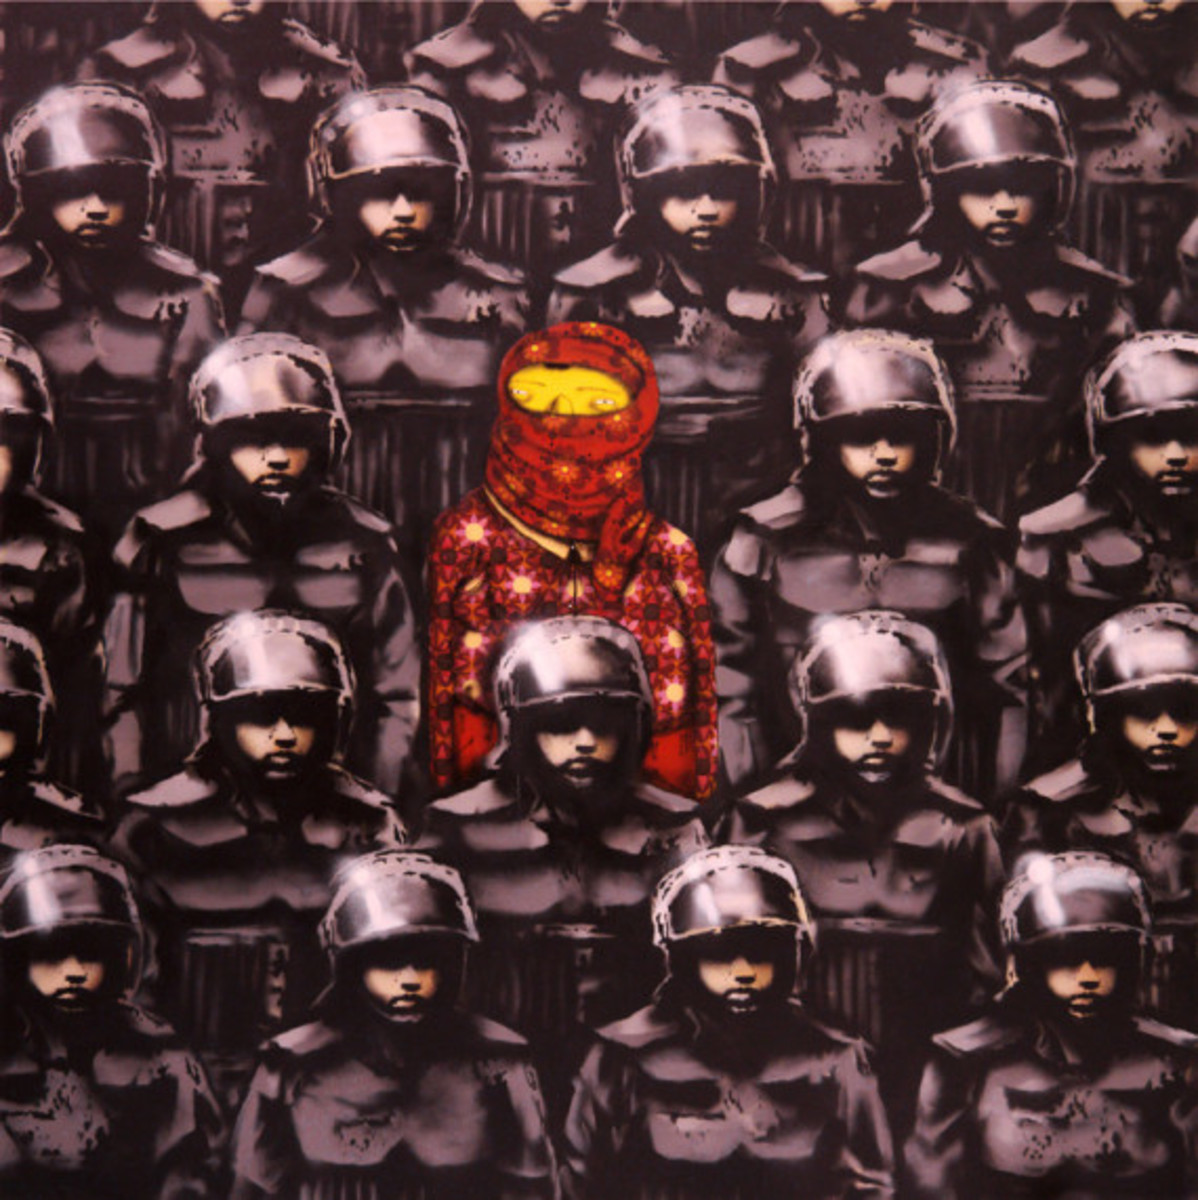 os-gemeos-banksy-for-better-out-than-in-002